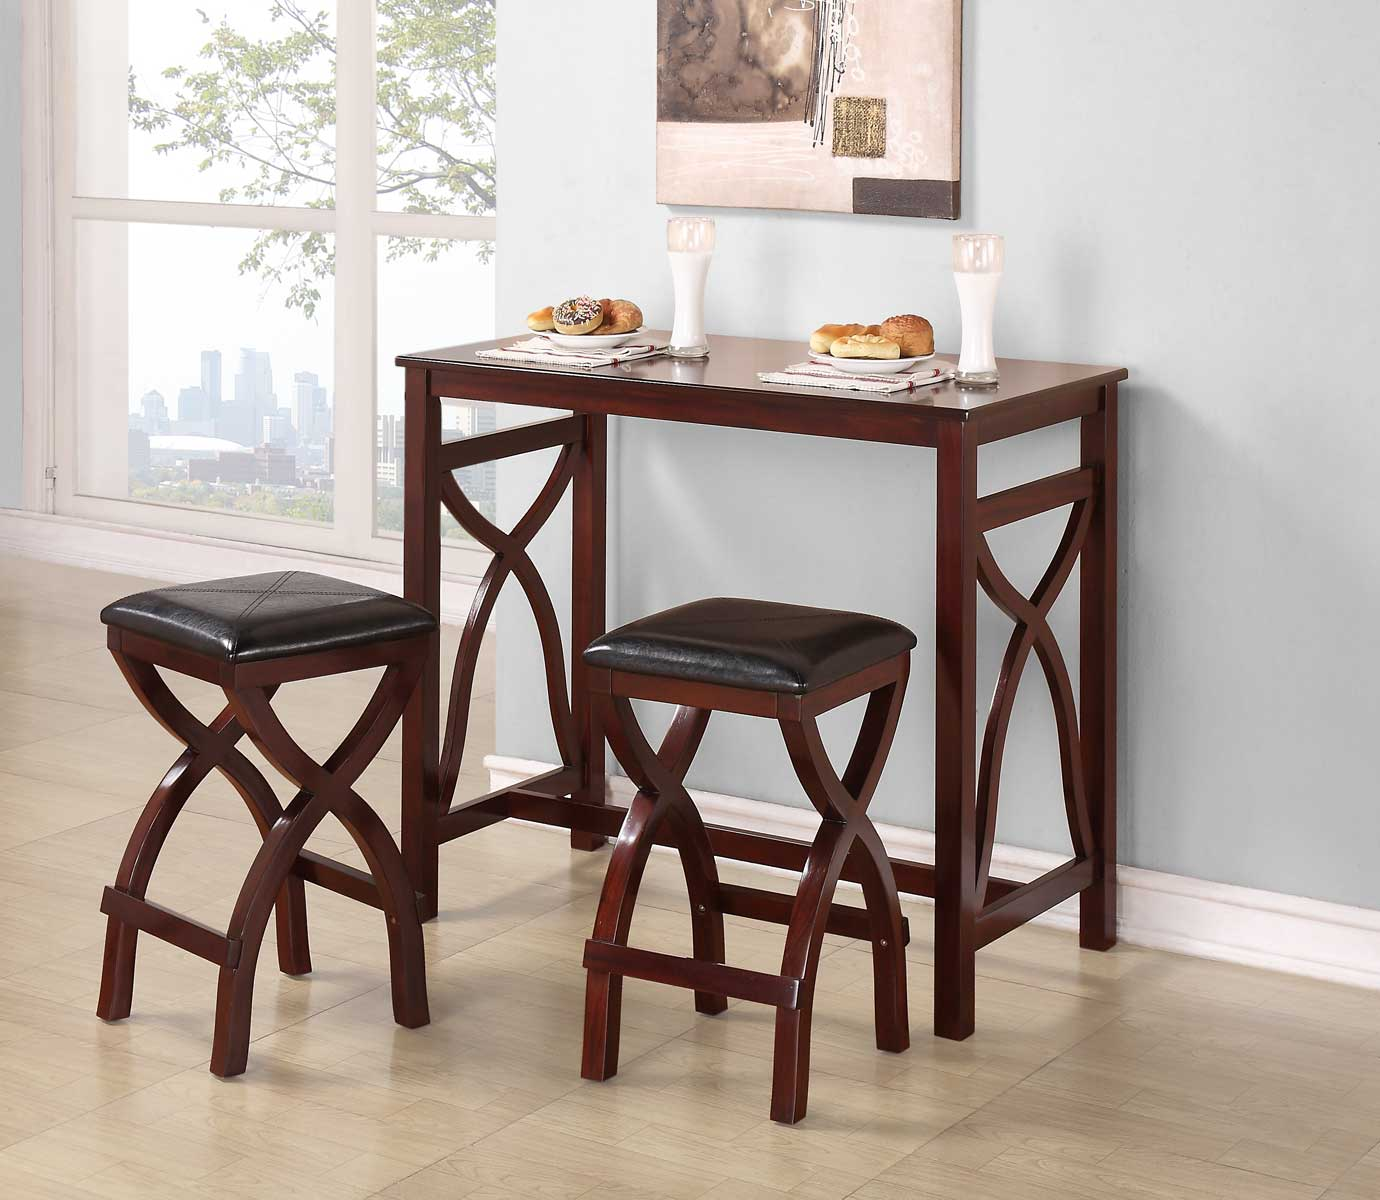 Homelegance Delling 3PC Counter Height Breakfast Dining Set - Warm Cherry